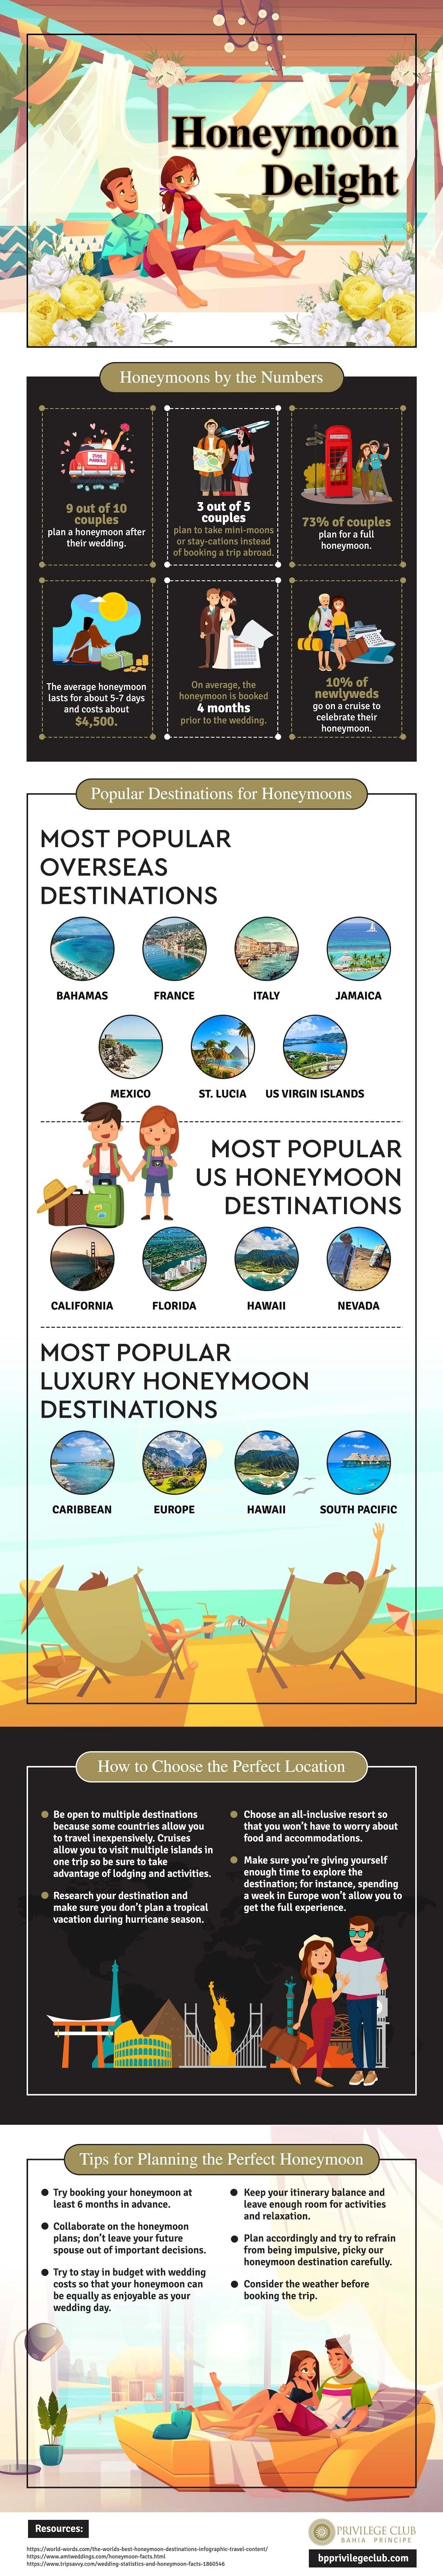 What Is Your Ideal Honeymoon? #infographic